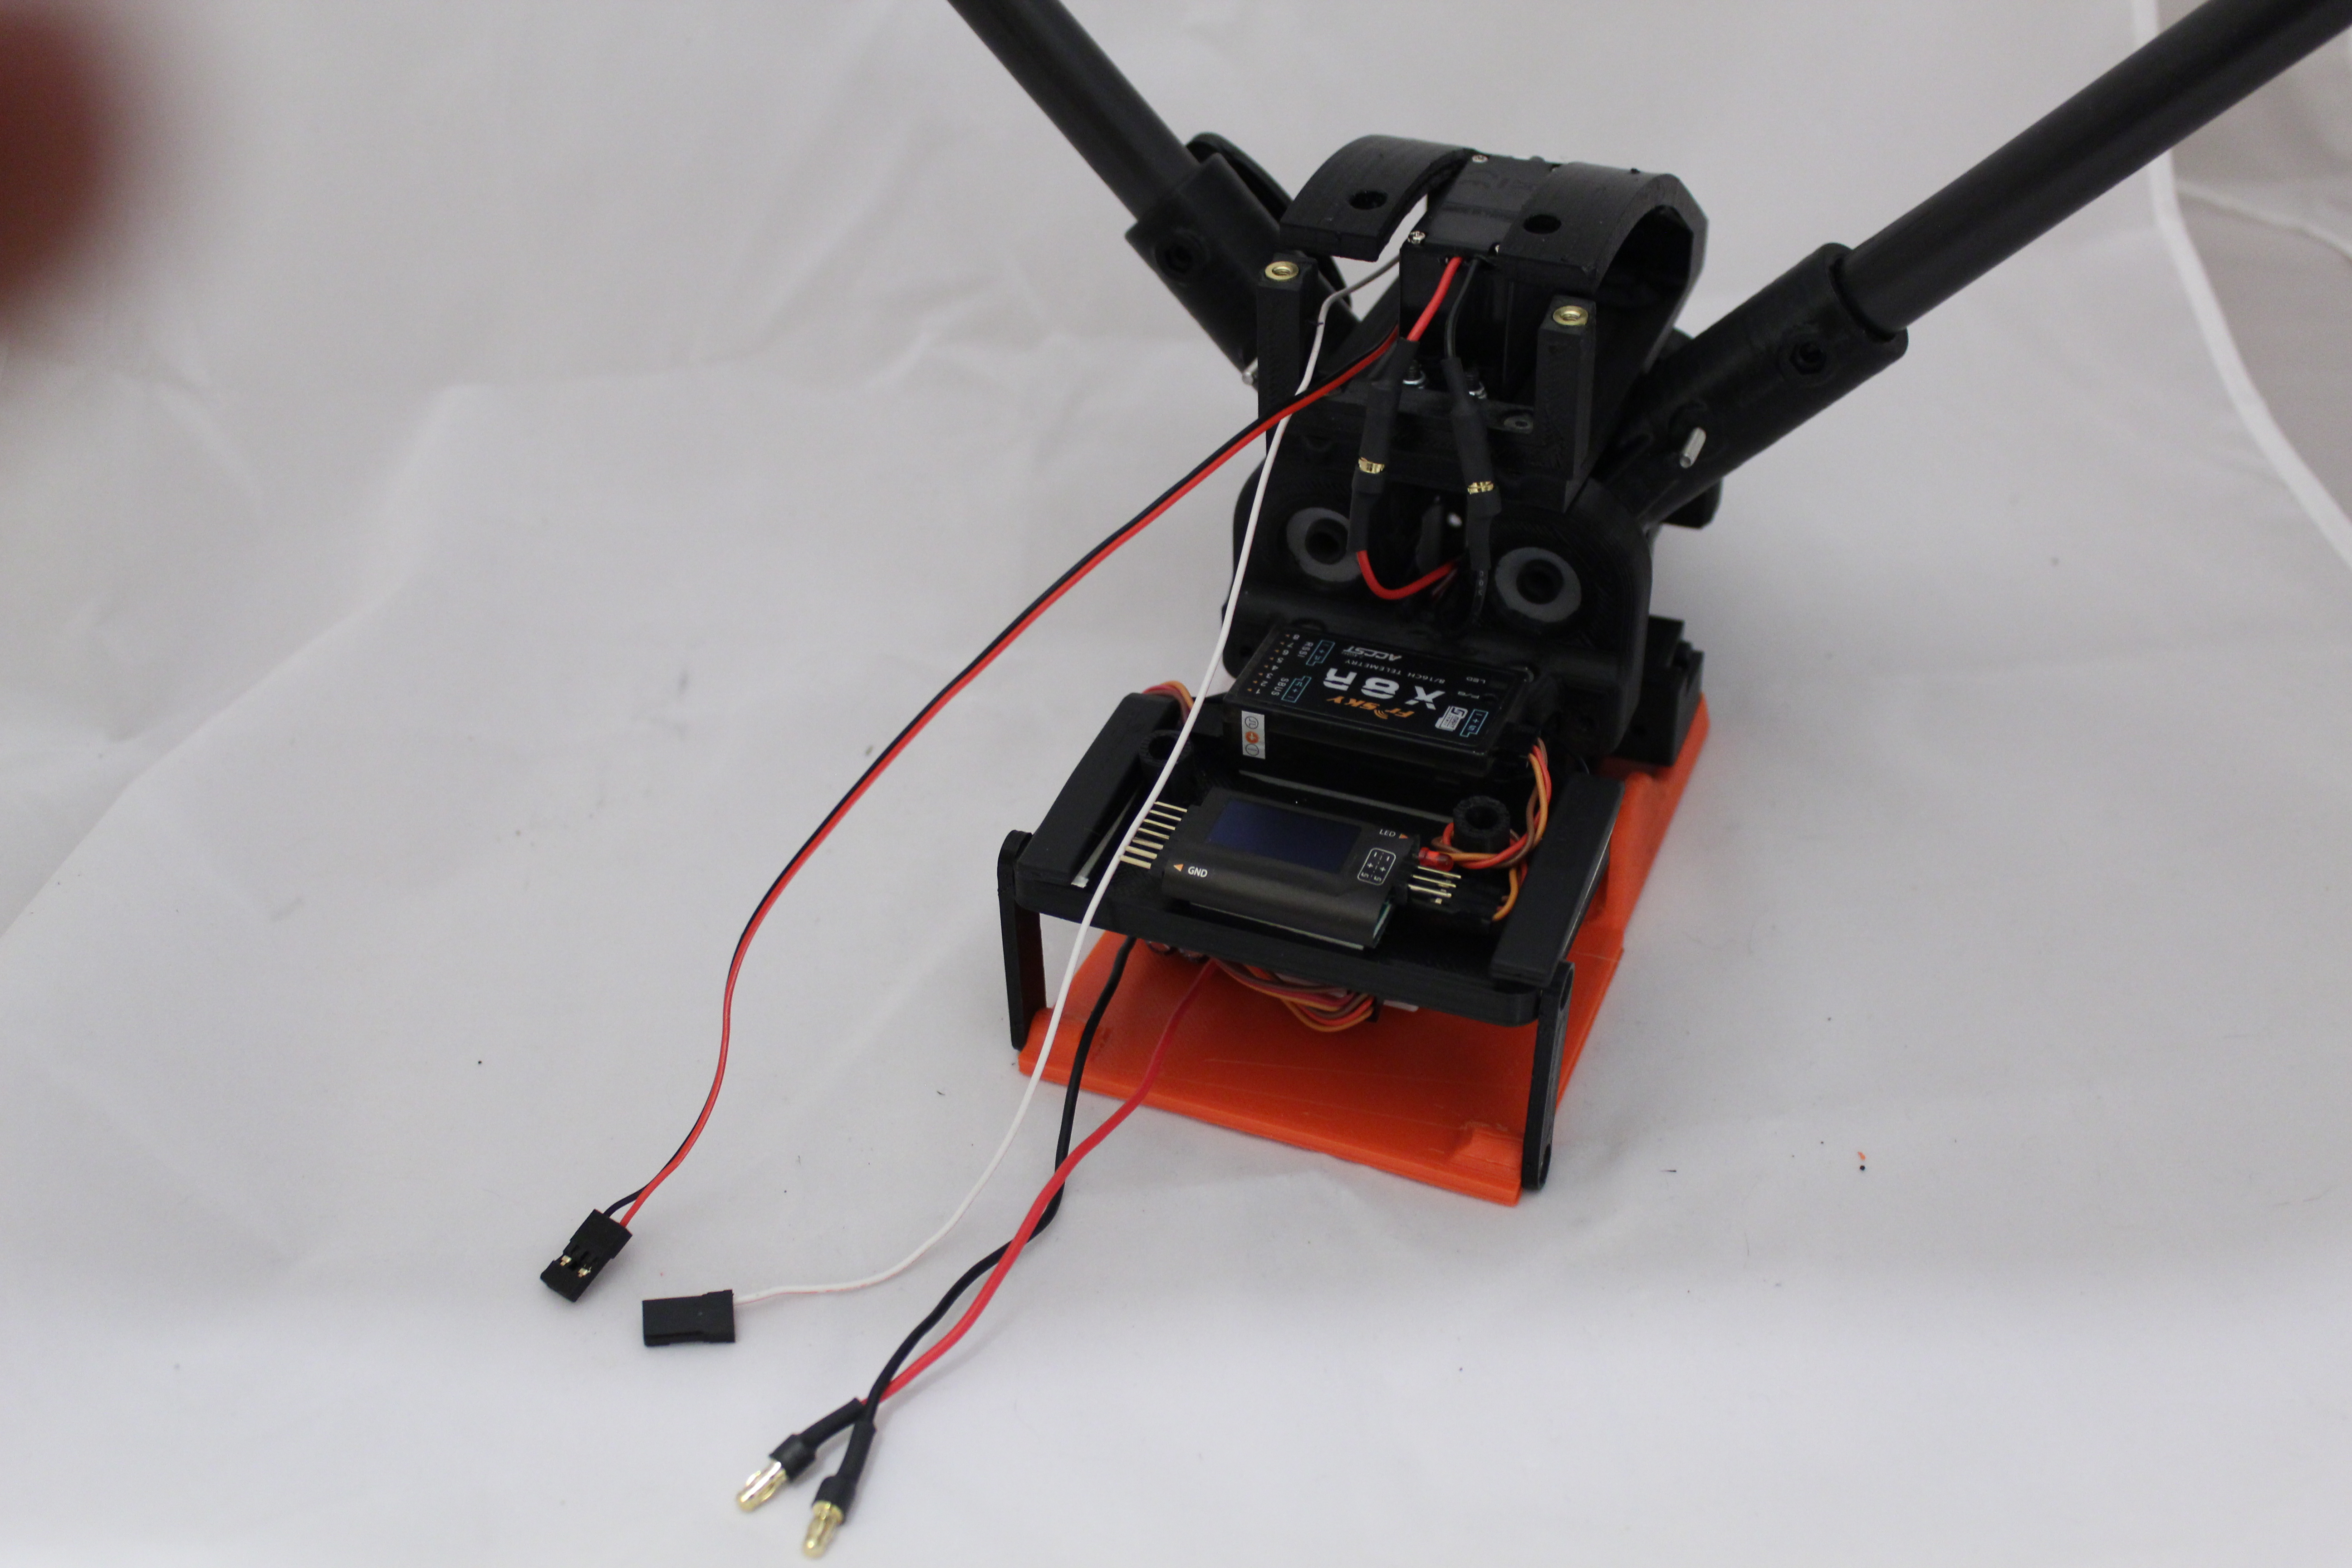 3d Printed Dji Inspire Clone Build Pictures And Instructions Printer Limit Switch Wiring Diagram Img 1450 1453